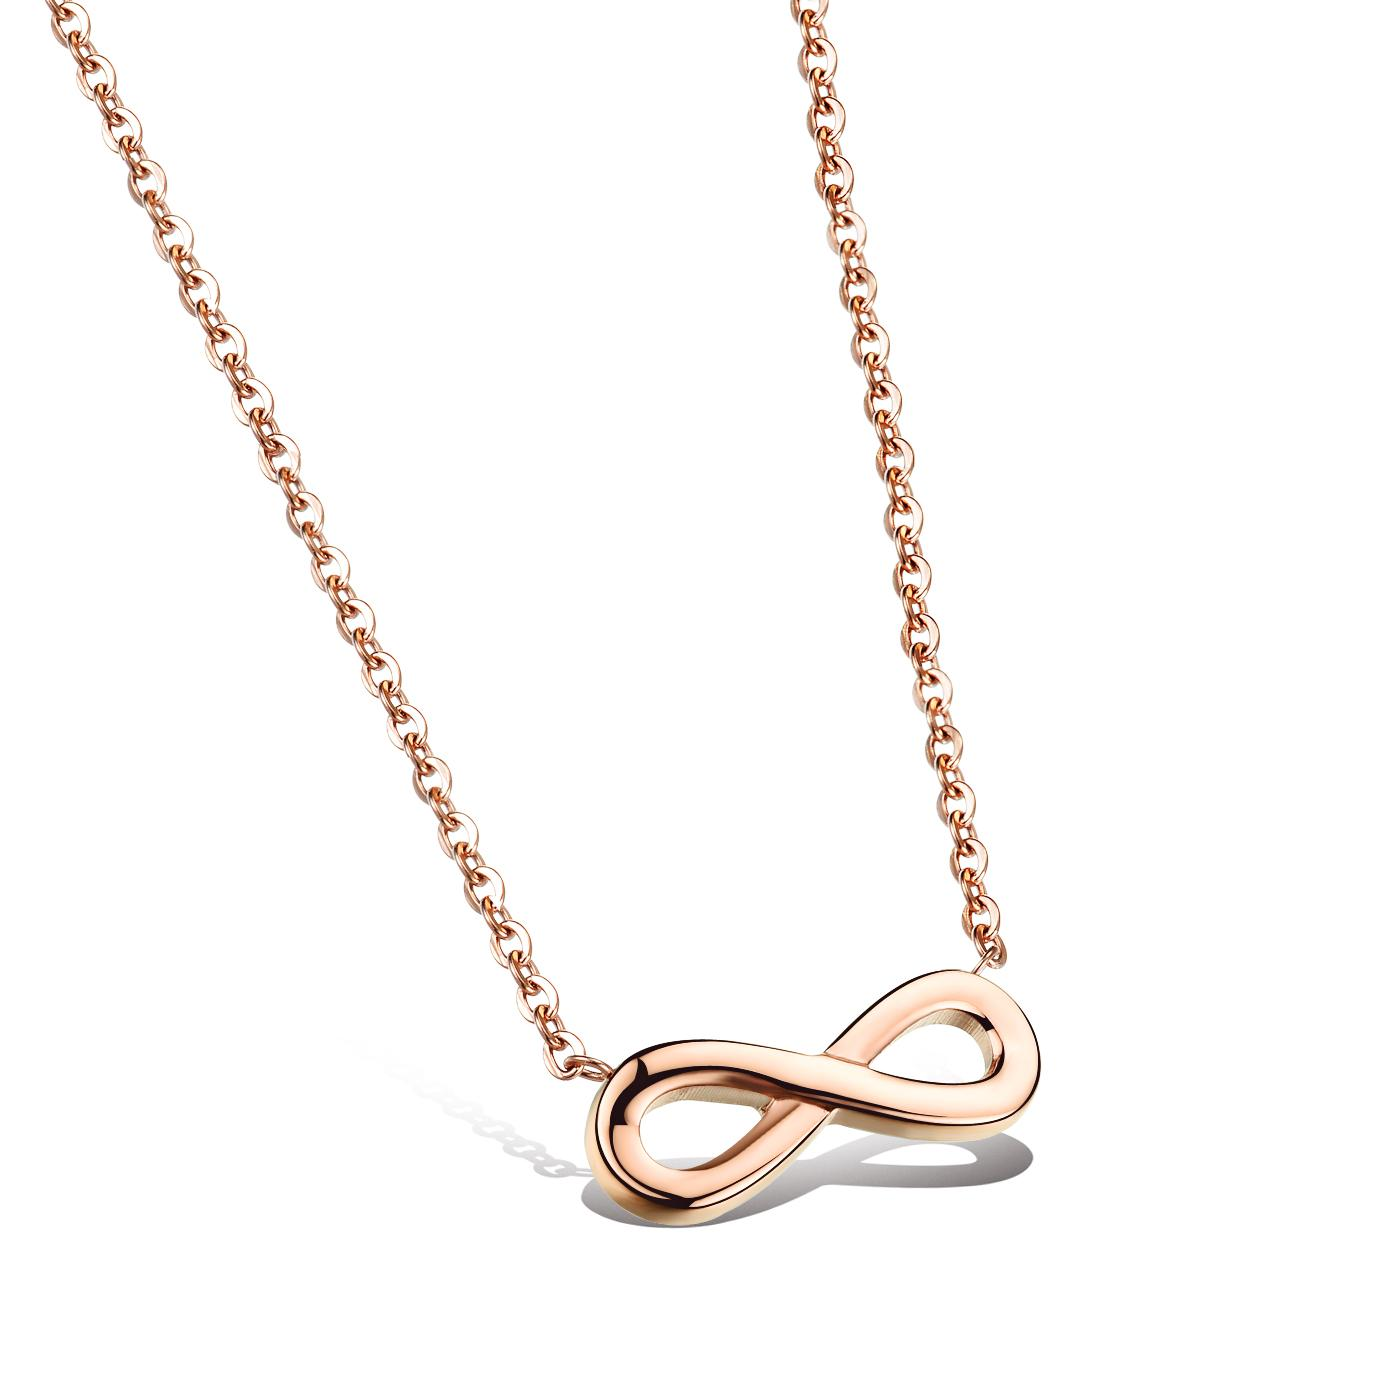 Luxury Simple Gold Necklaces for Women | Jewellry\'s Website